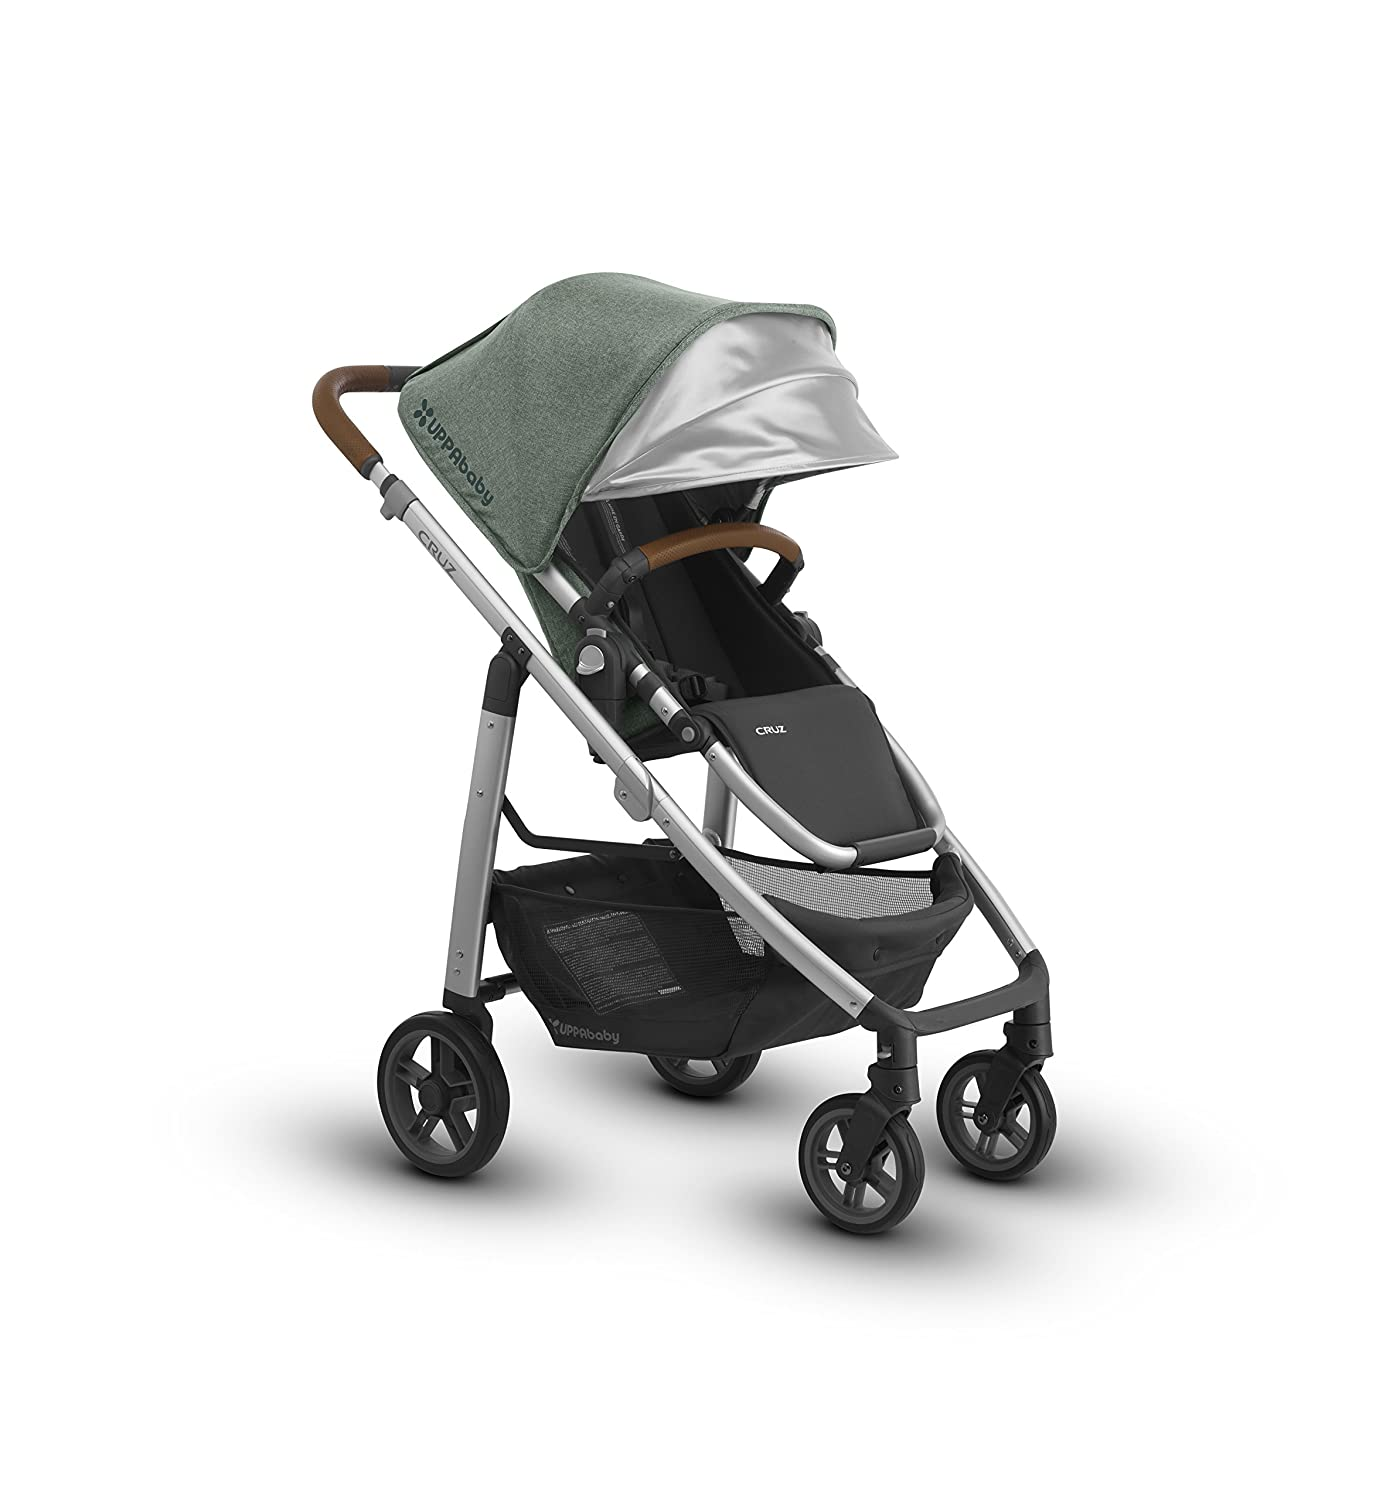 2018 UPPAbaby Cruz Stroller - Emmett (Green Melange/Silver/Saddle Leather) 81smFTihkwL